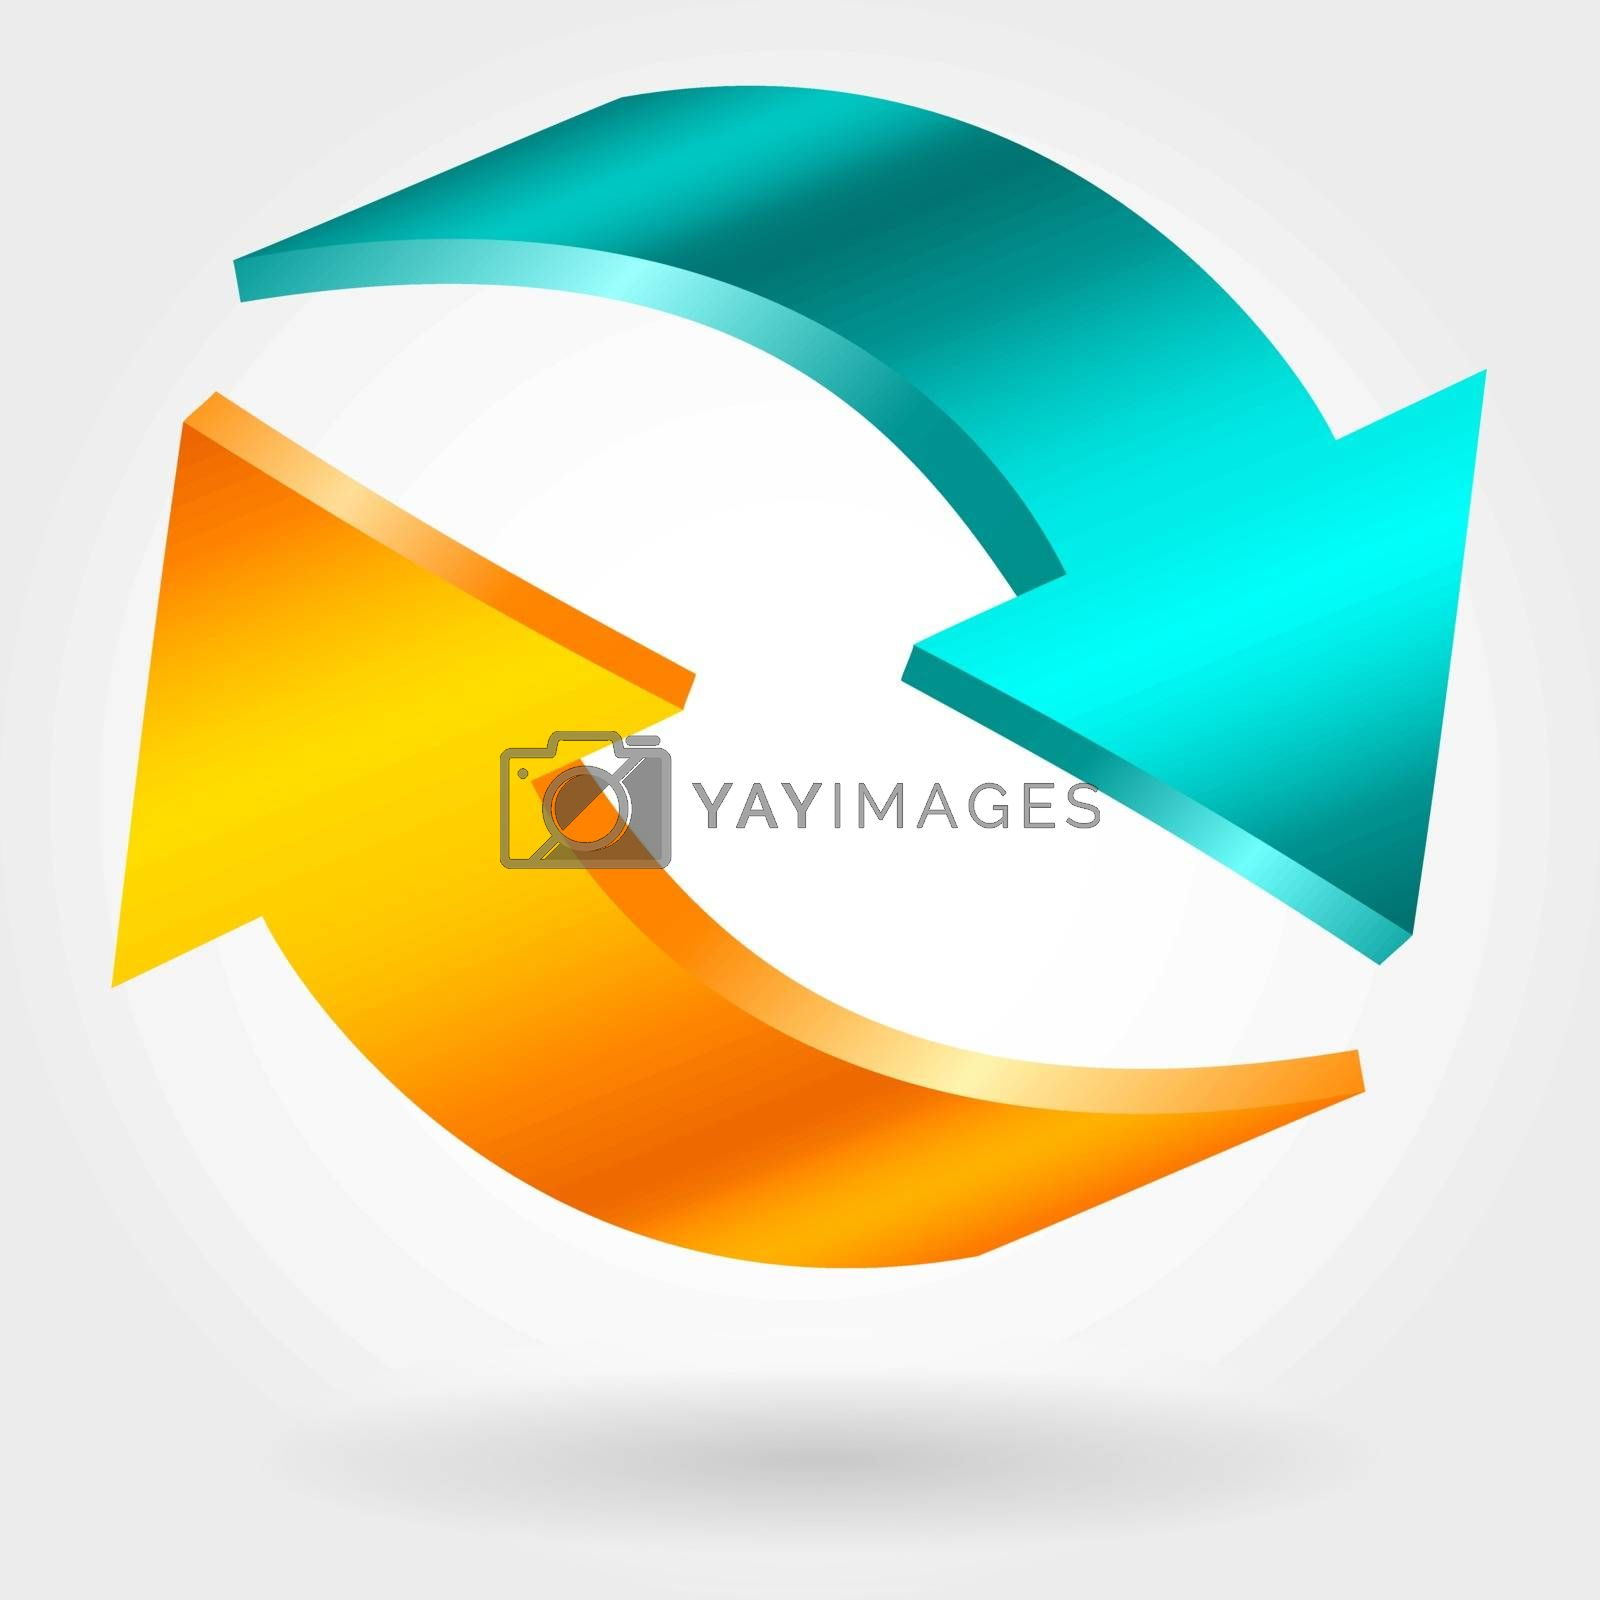 Counter blue and orange arrows. Photorealistic 3d illustration. Exchange and recovery symbol